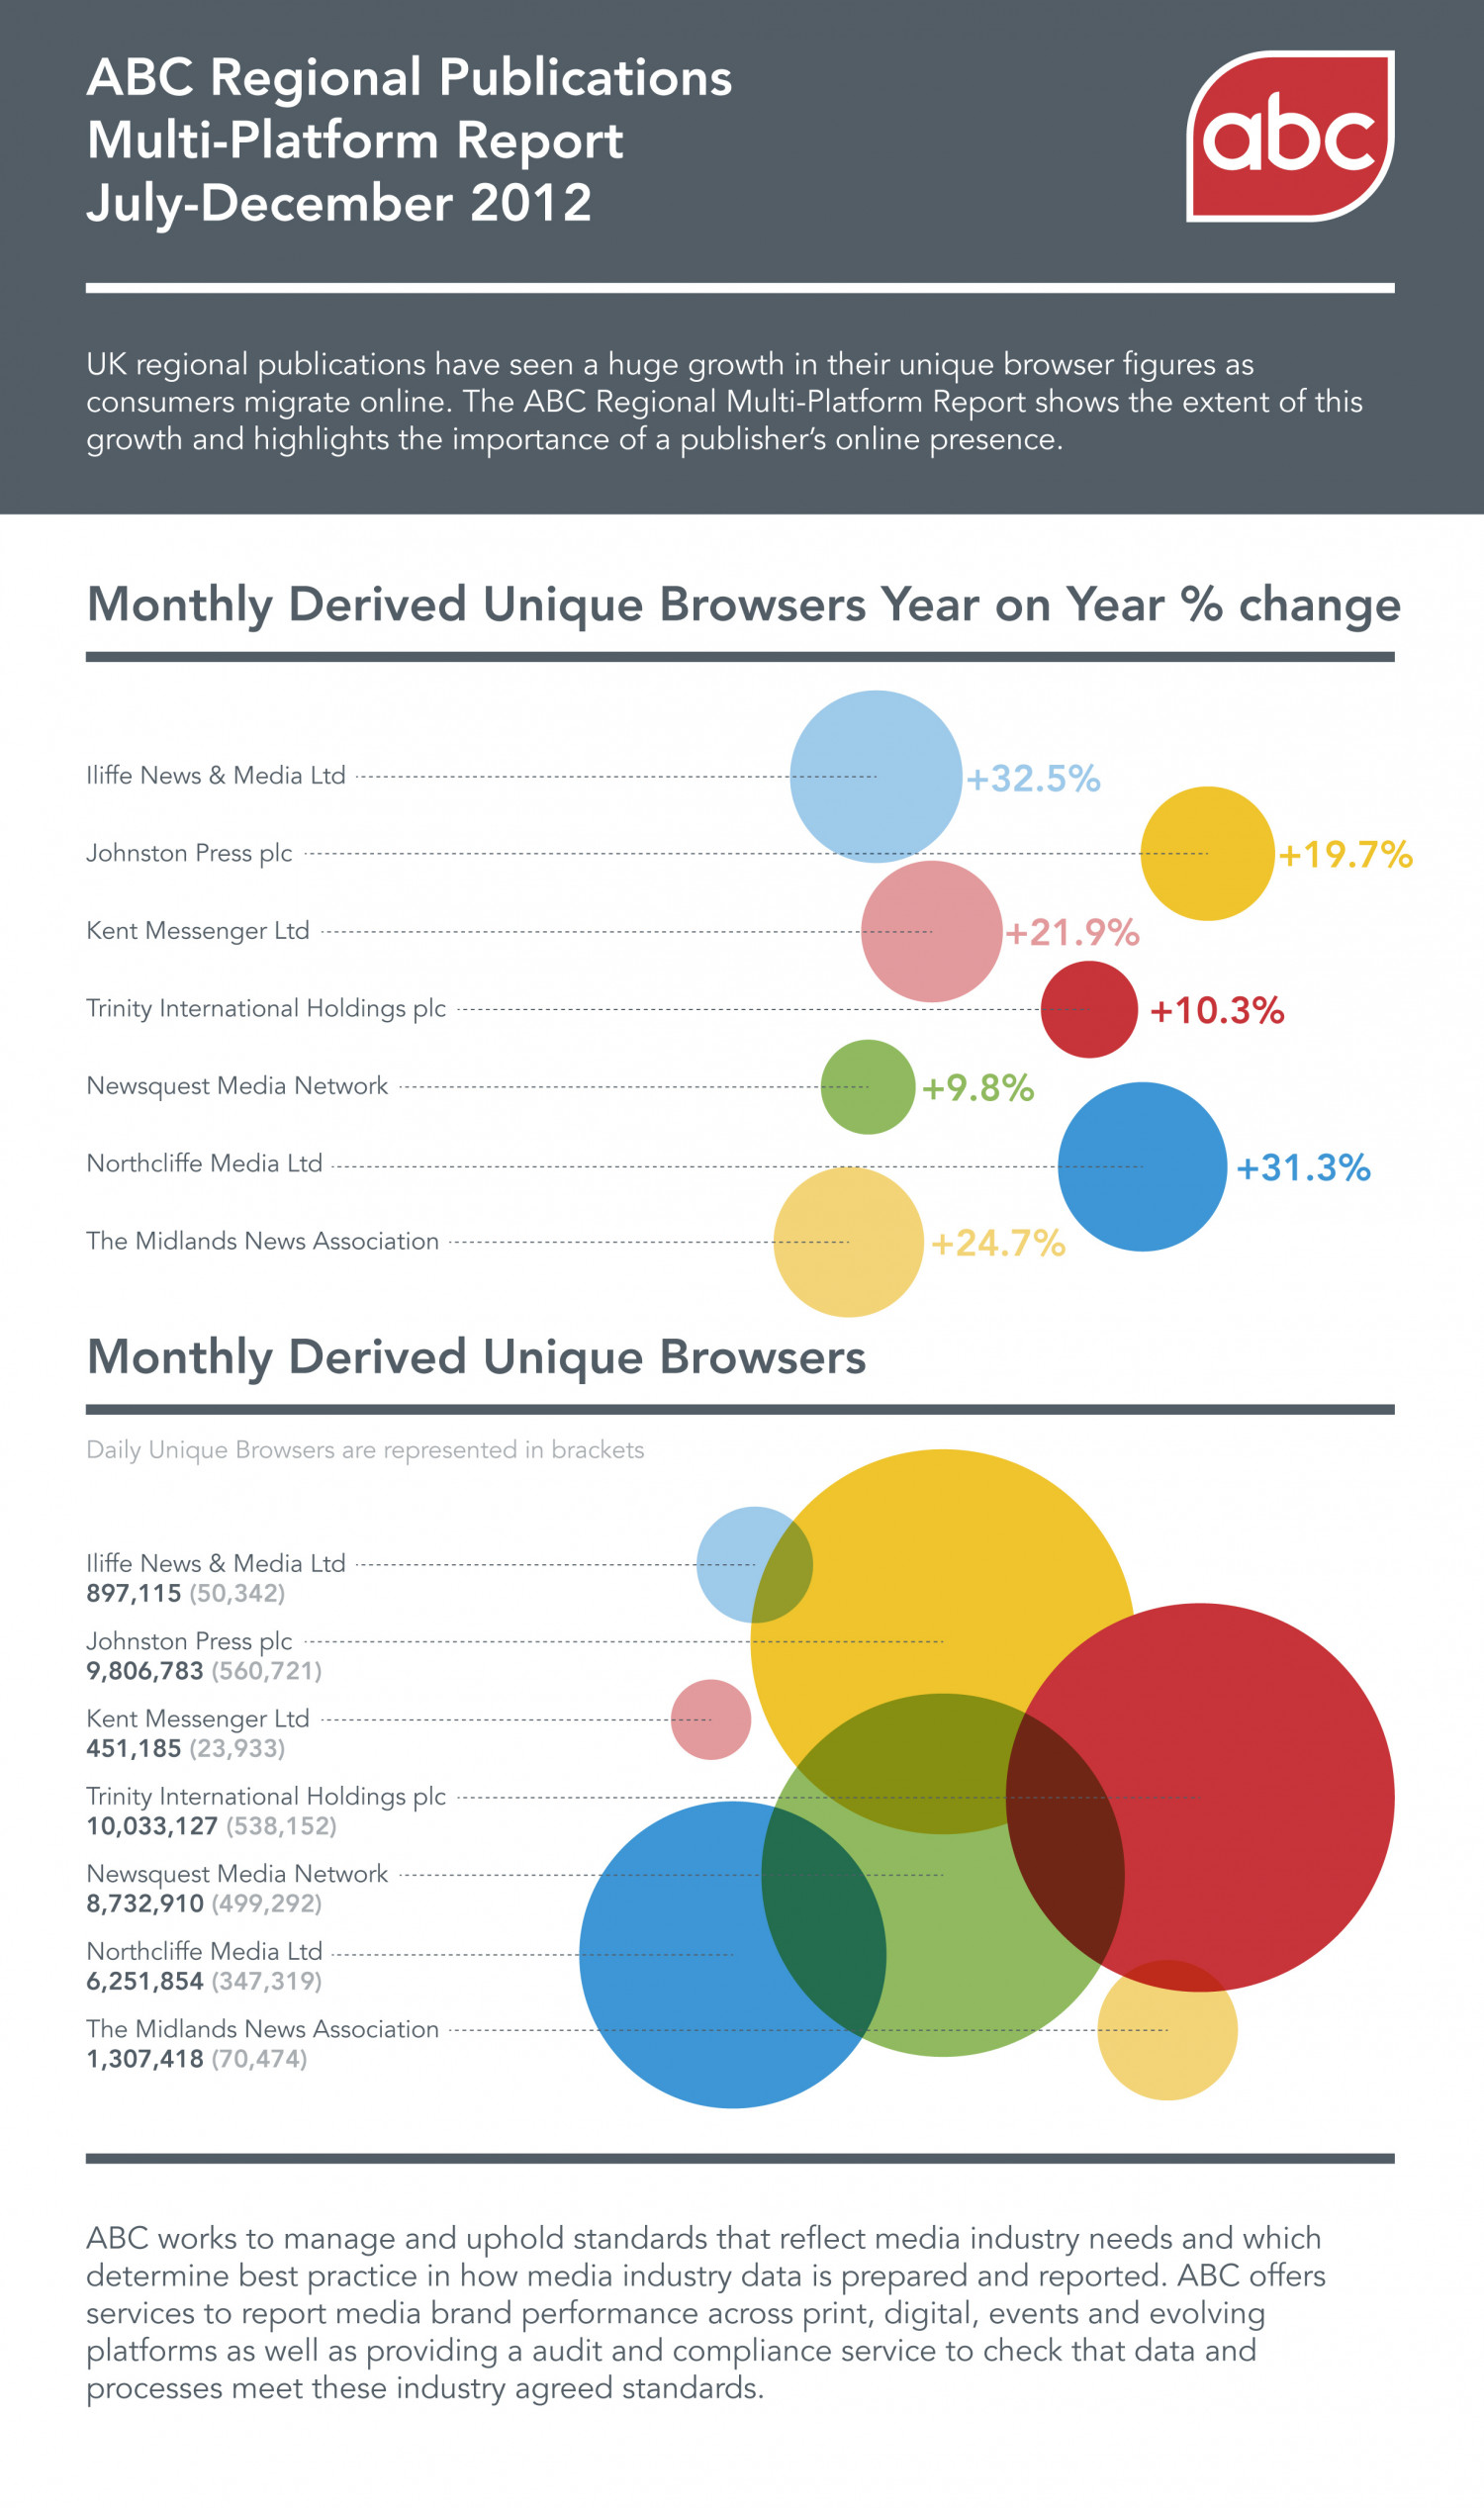 ABC Regional Publications Multi-Platform Report July - December 2012 Infographic